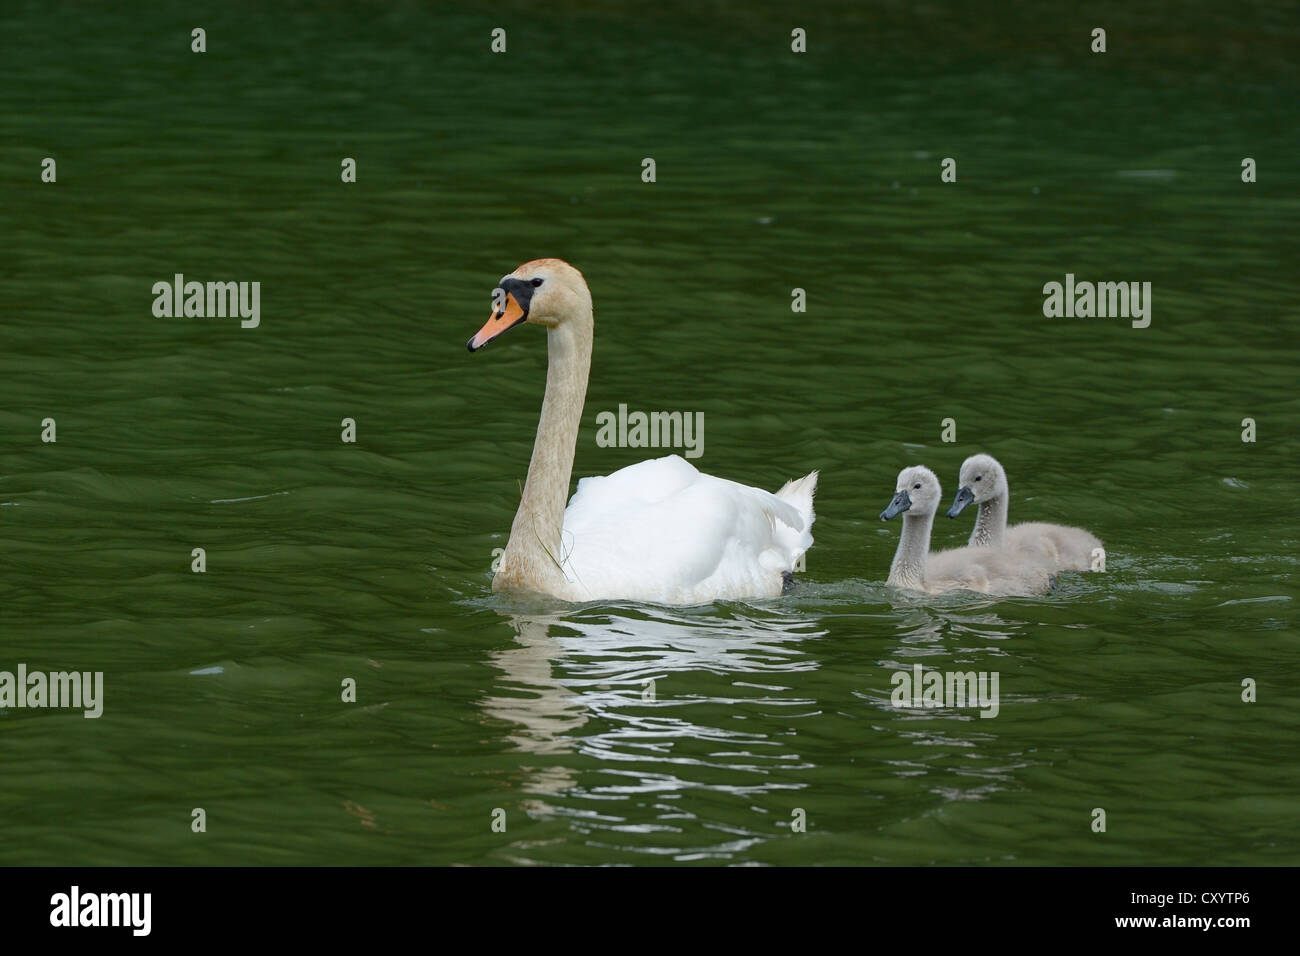 Mute Swan (Cygnus olor) swimming with two cygnets on Wichelsee lake, Sarnen, Switzerland, Europe Stock Photo